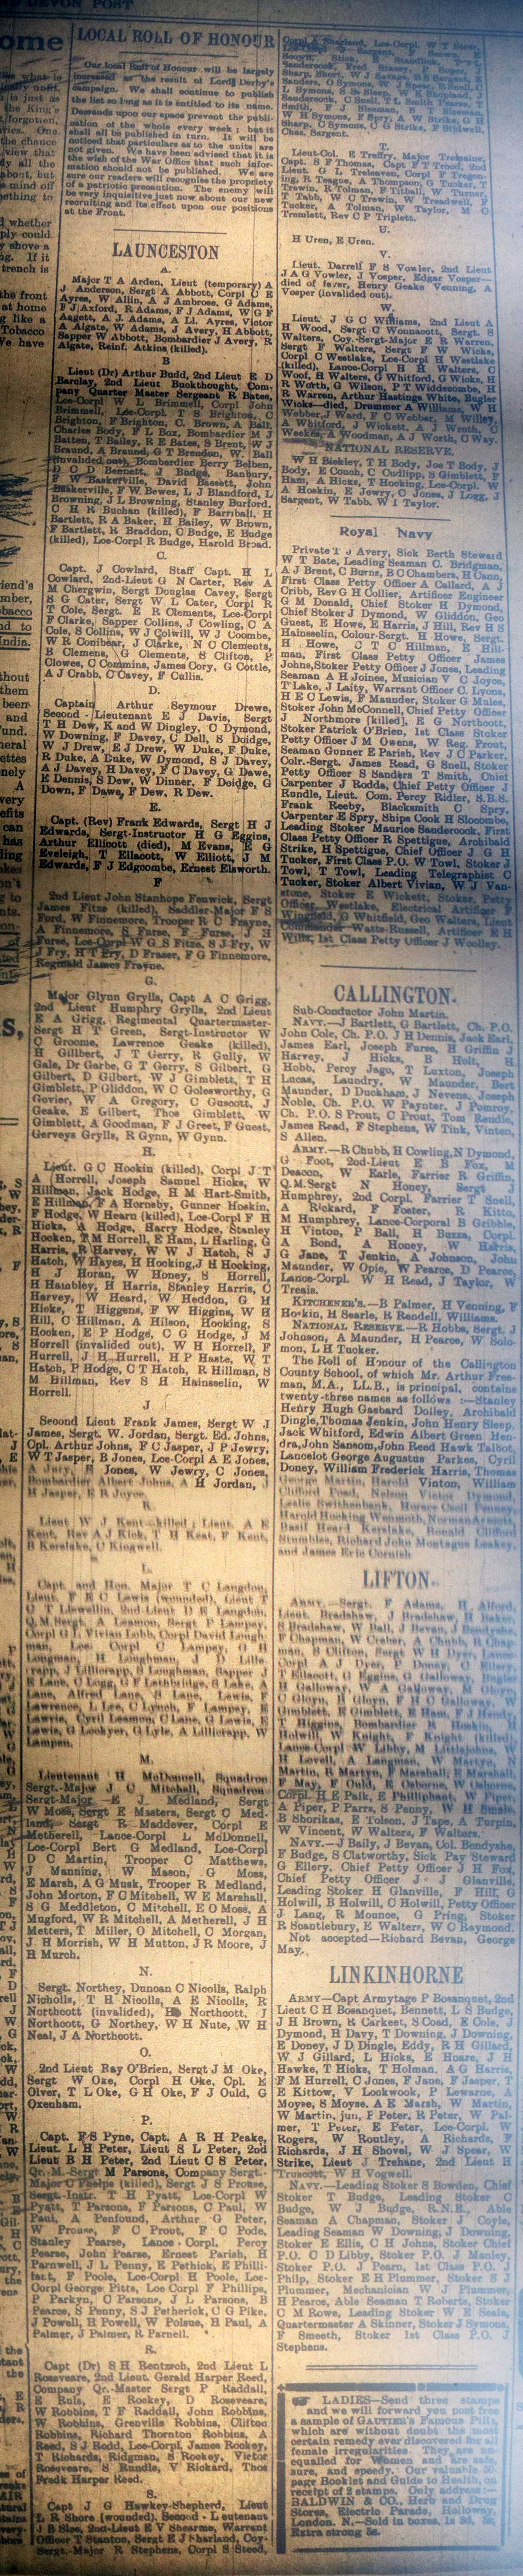 Launceston Roll of Honour January 1st, 1916